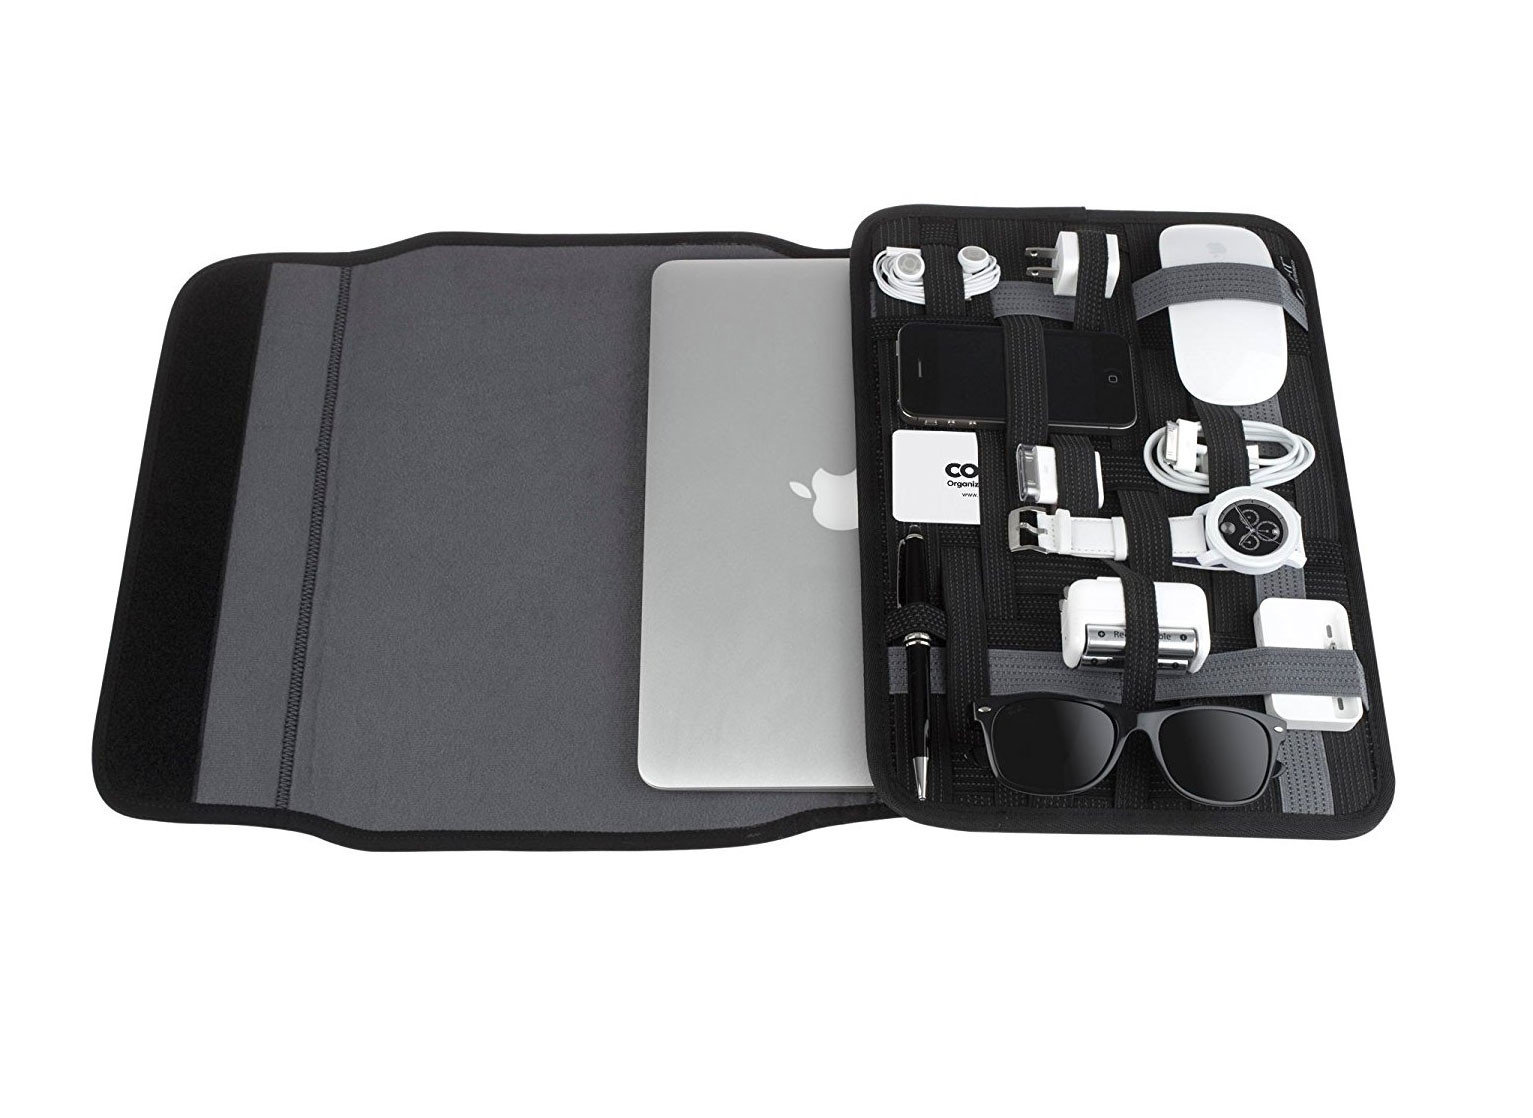 Packing Tips Travel Tips product hardware product design tool